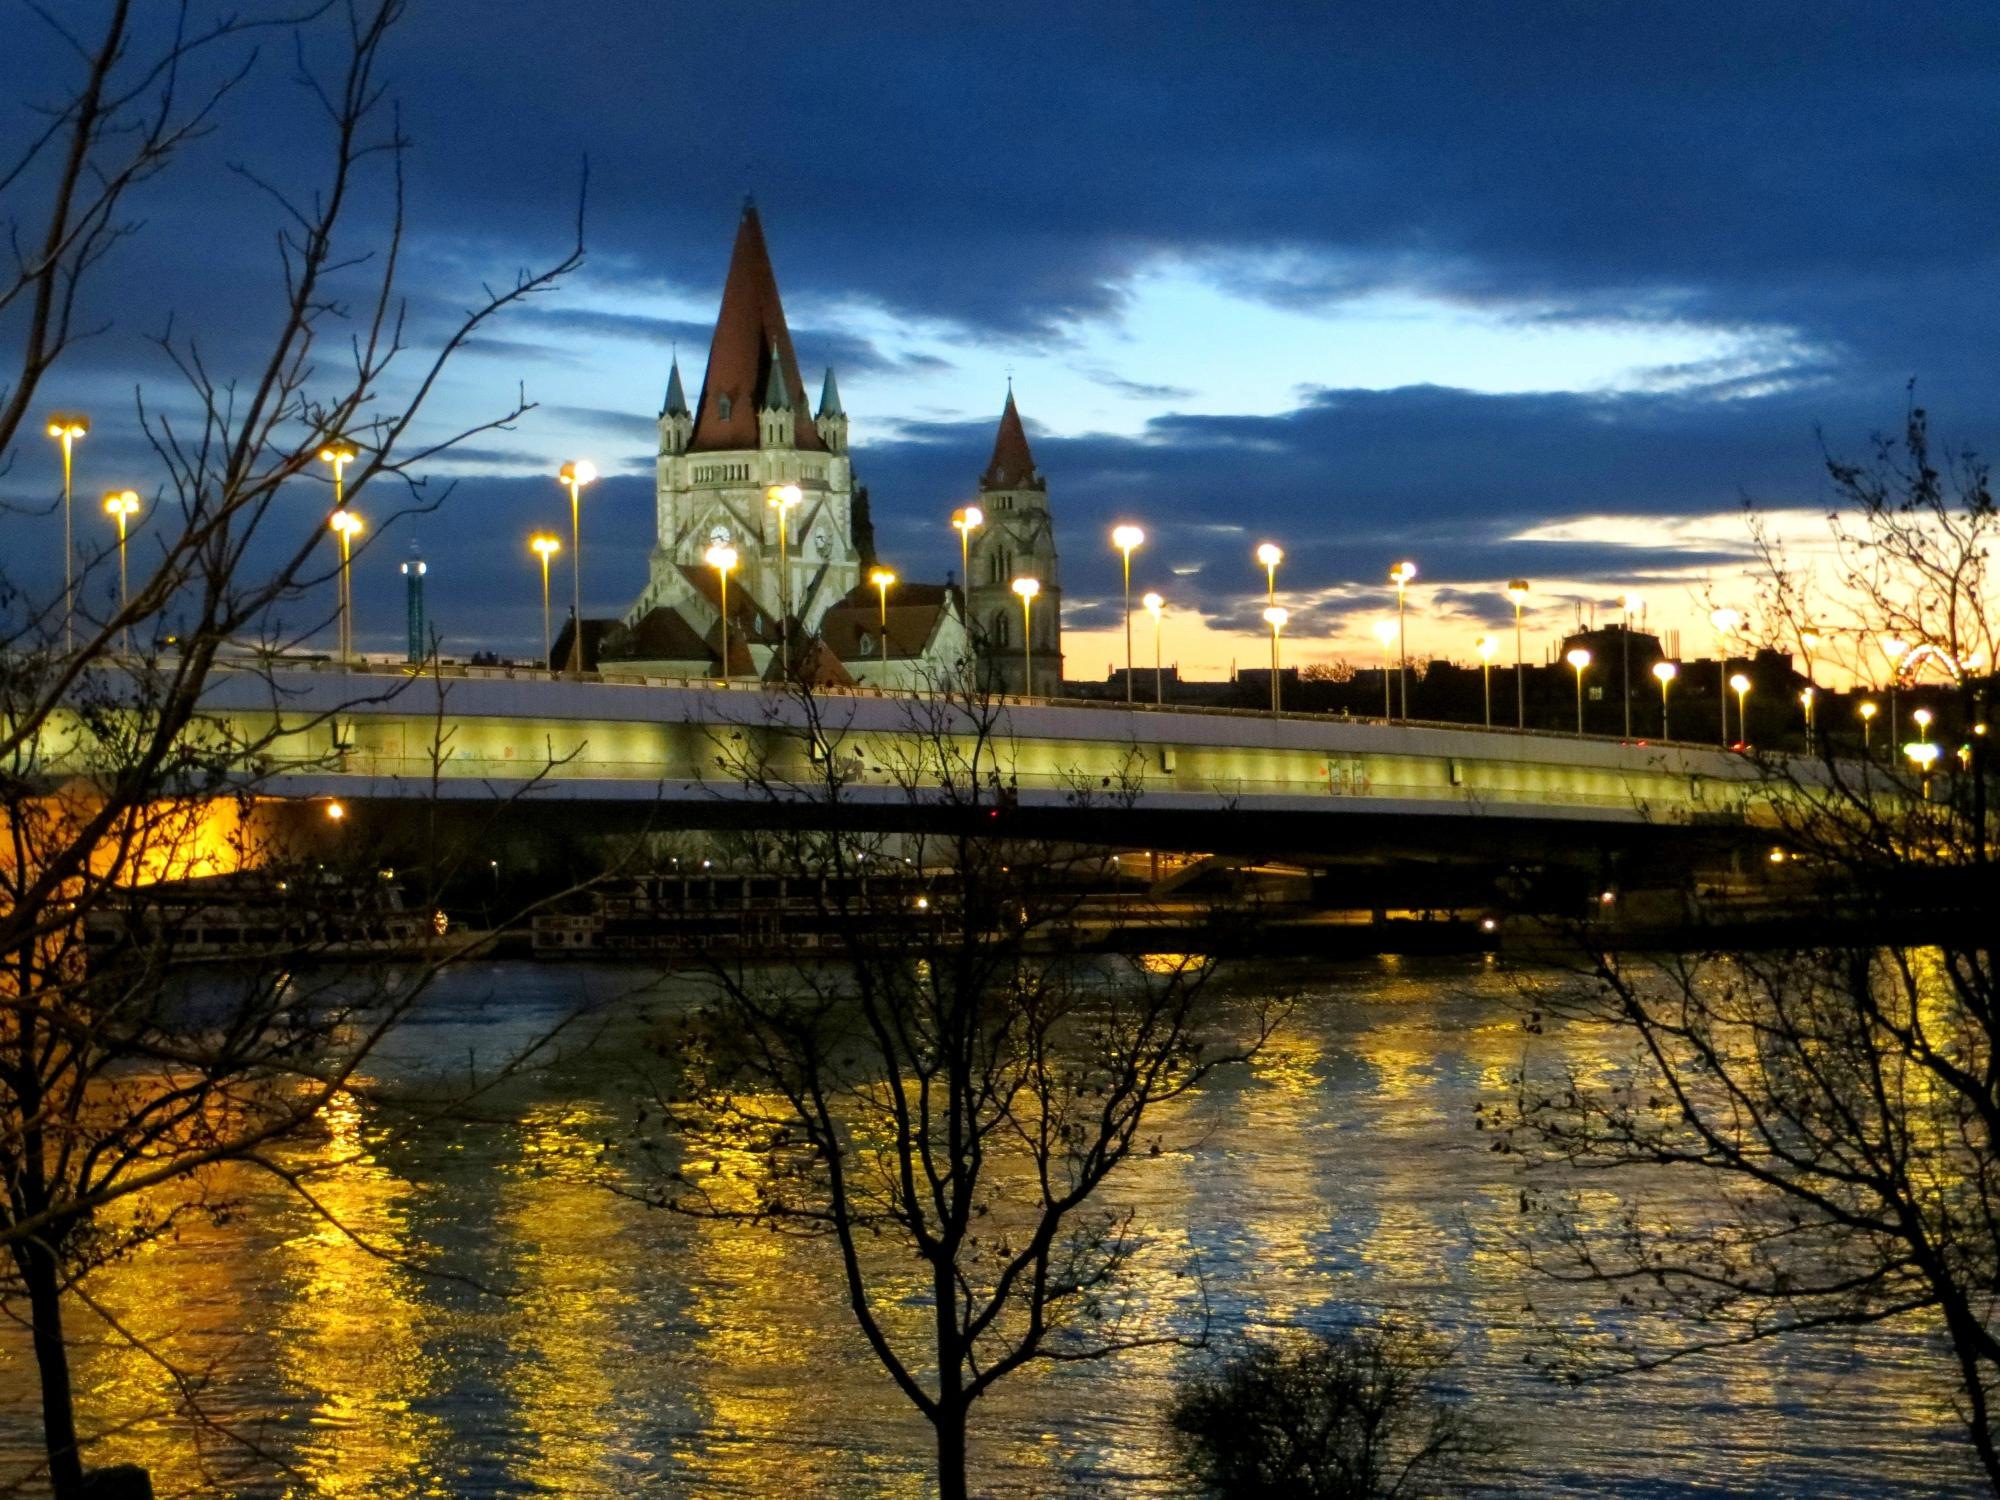 A bridge over Danube river captured with lights and reflections!